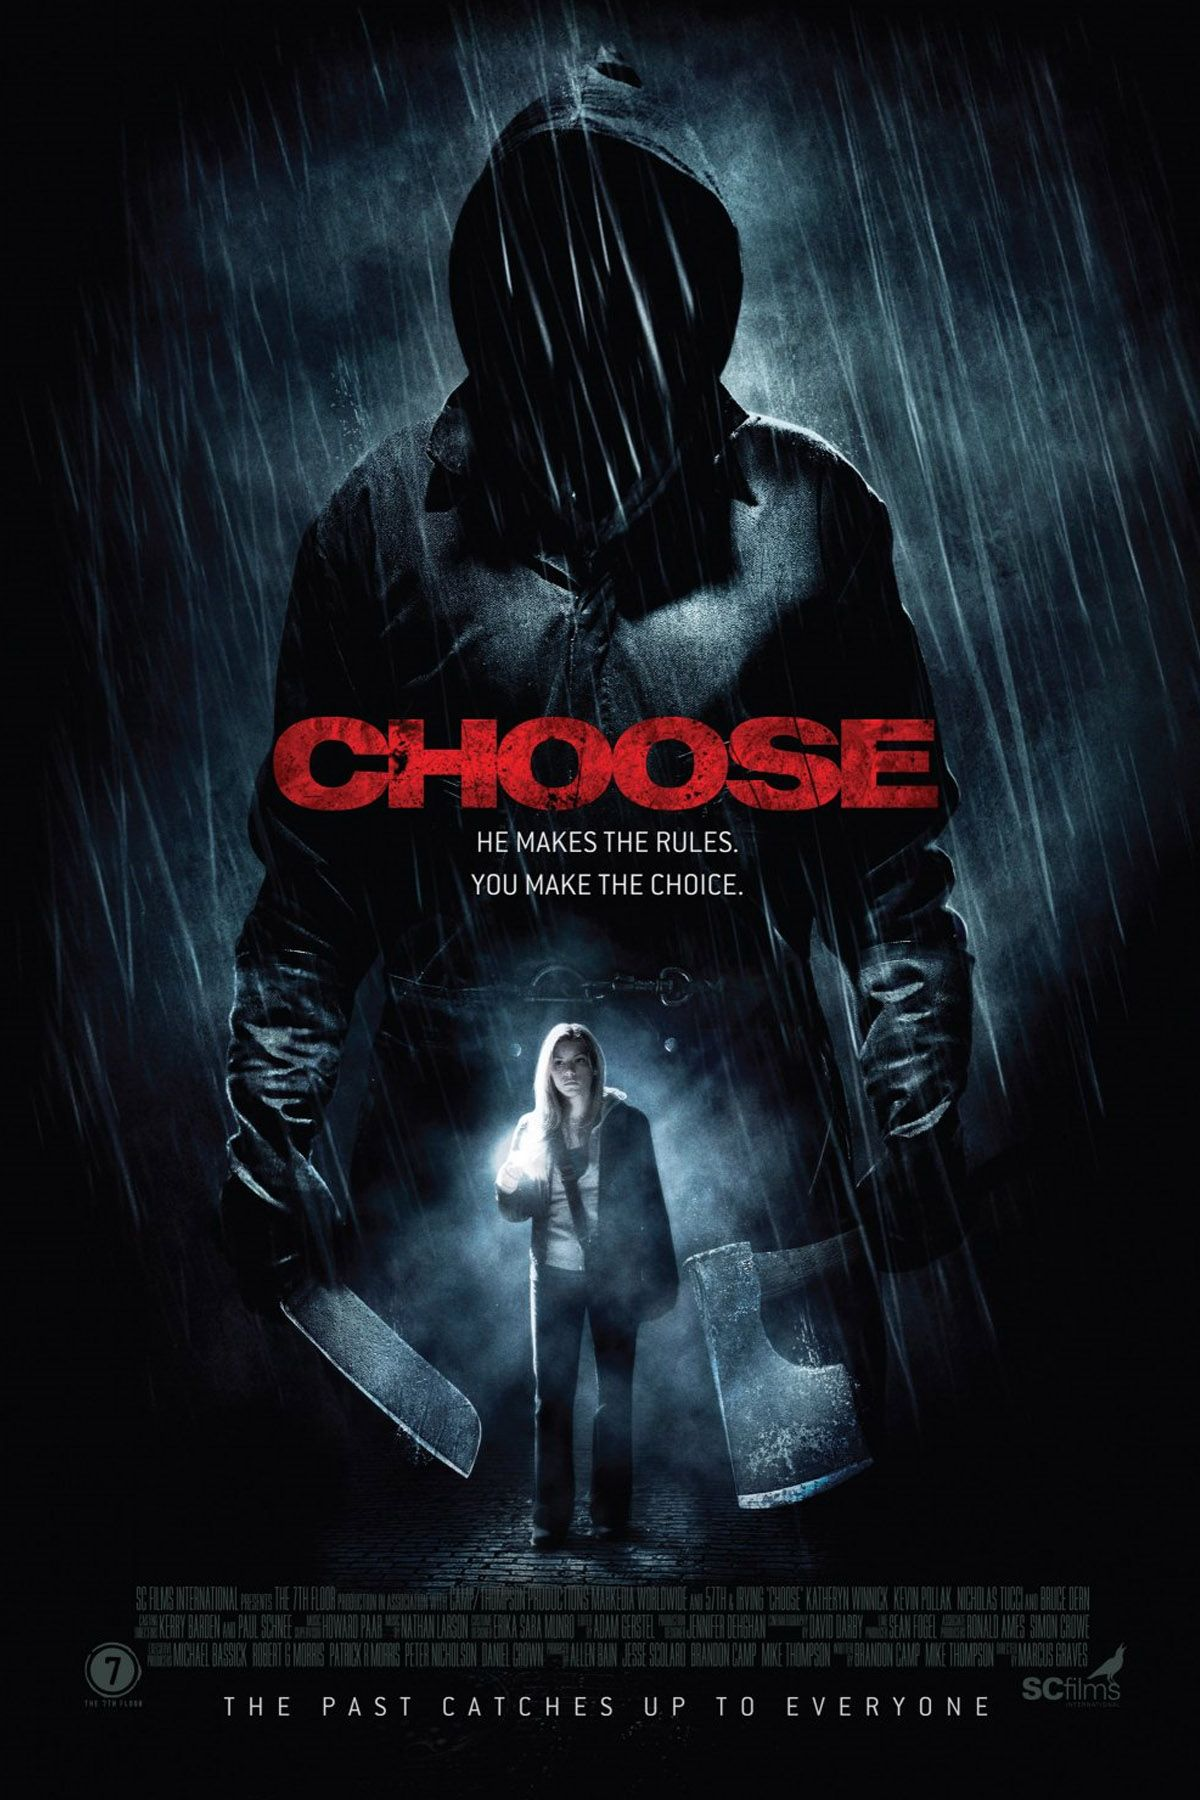 Film Hire Movies to watch, Horror posters, Movie posters